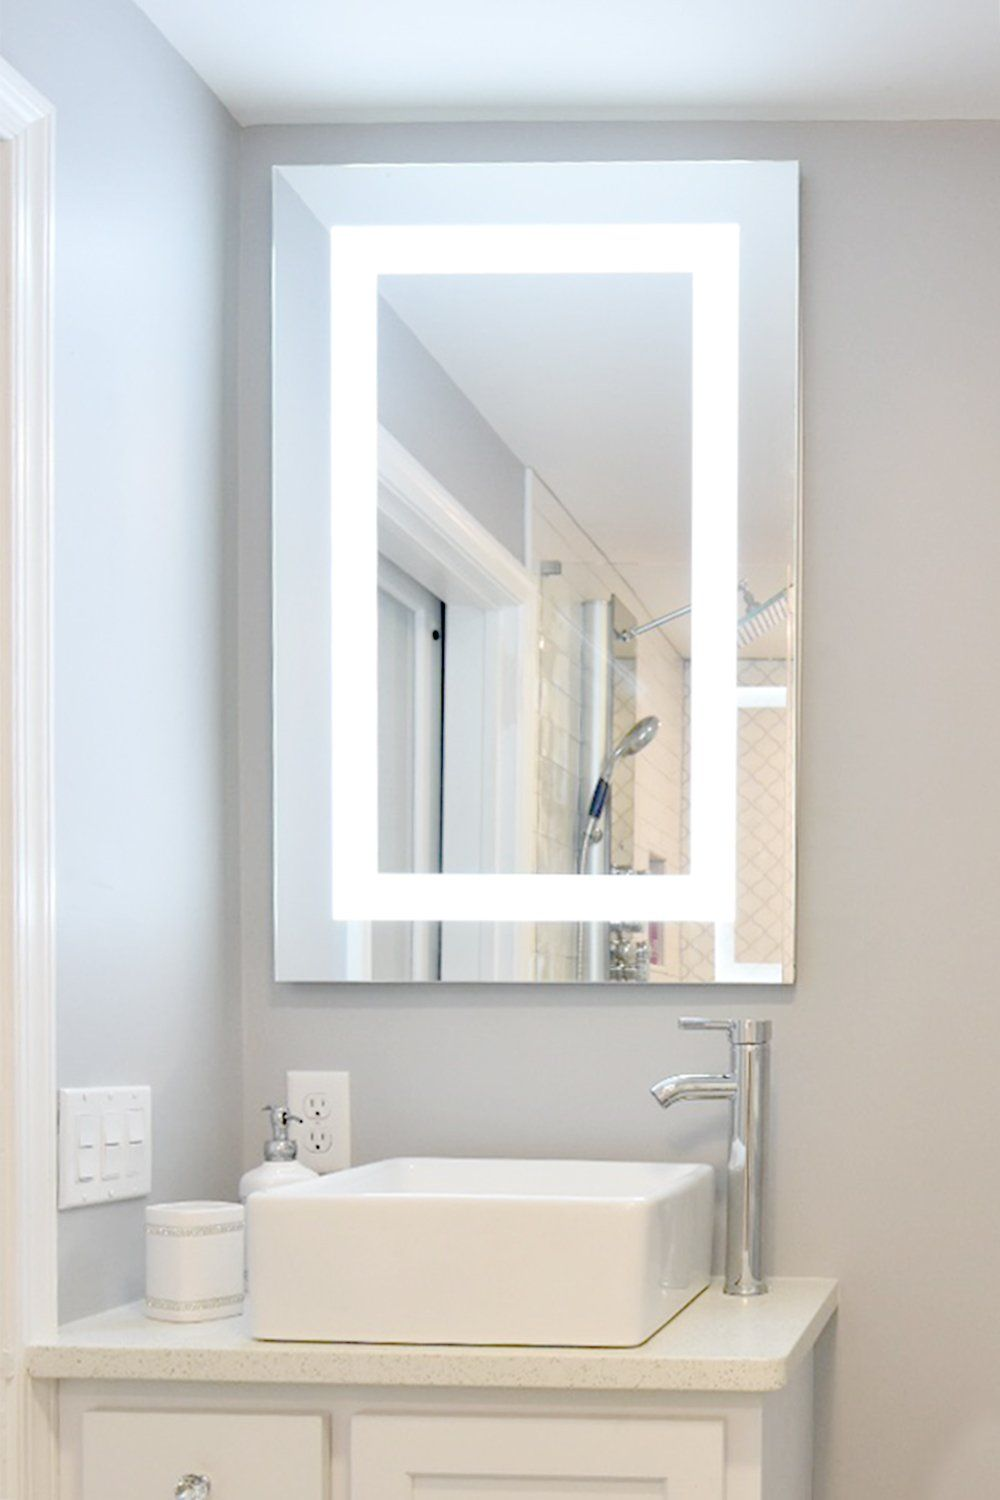 Mirrors And Marble Brand Commercial Grade Flush Mounted Led Lighted Led Bathroom Mirror Medicine Mirrored Cabinet Doors Bathroom Mirror Bathroom Mirror Lights